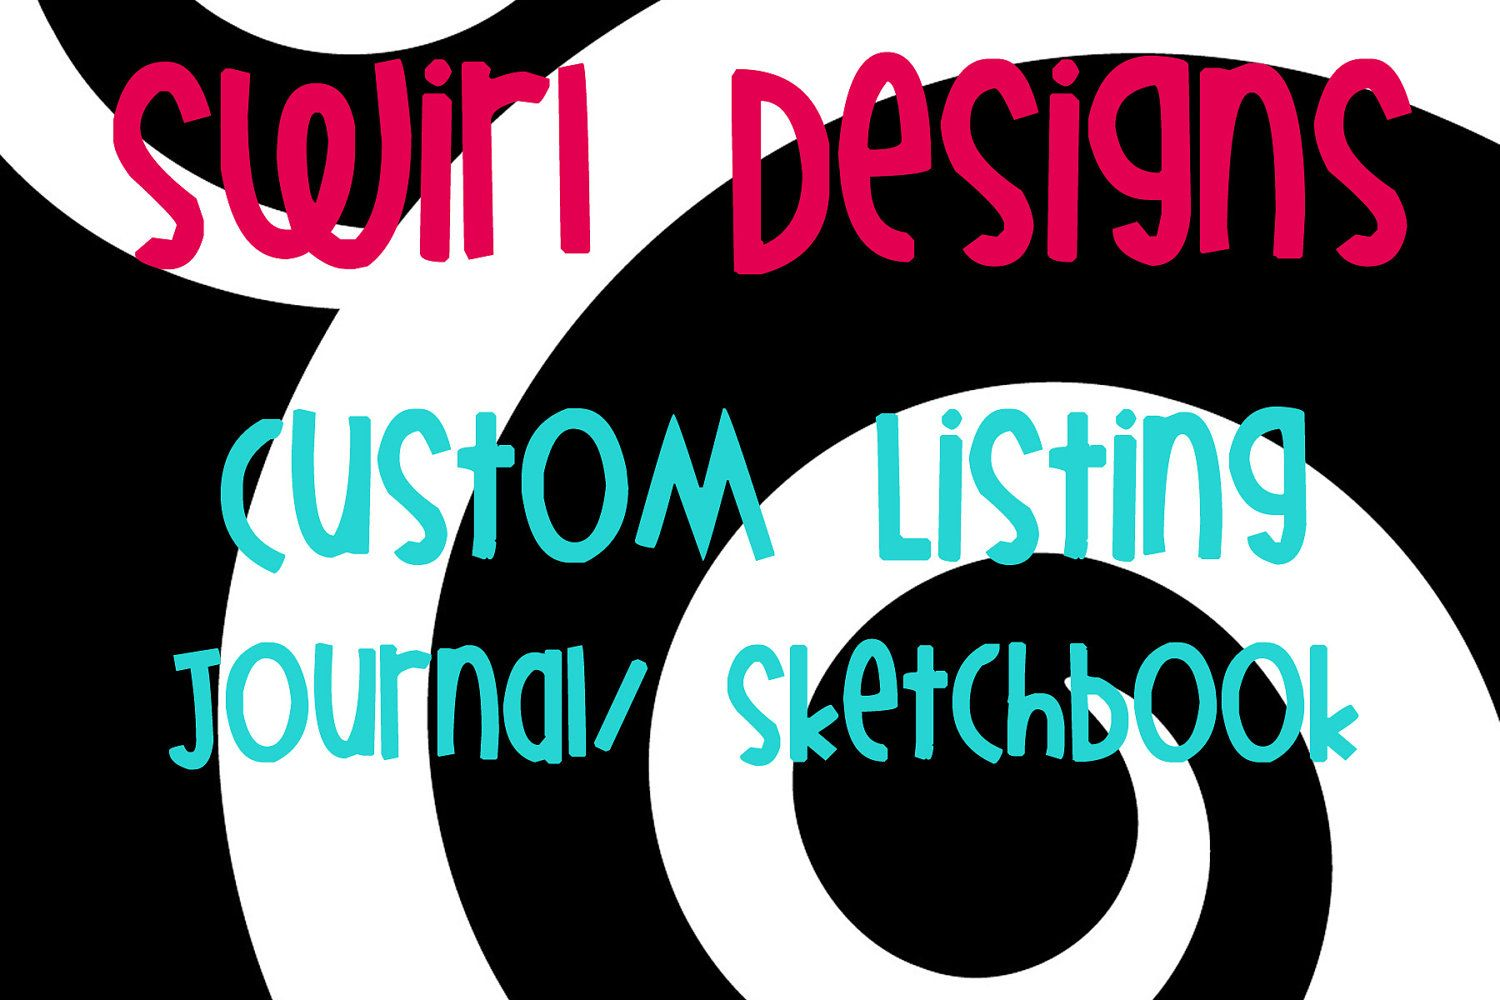 Custom+Listing+for+One+Journal/Sketchbook+by+SwirlDesigns2+on+Etsy,+$12.00